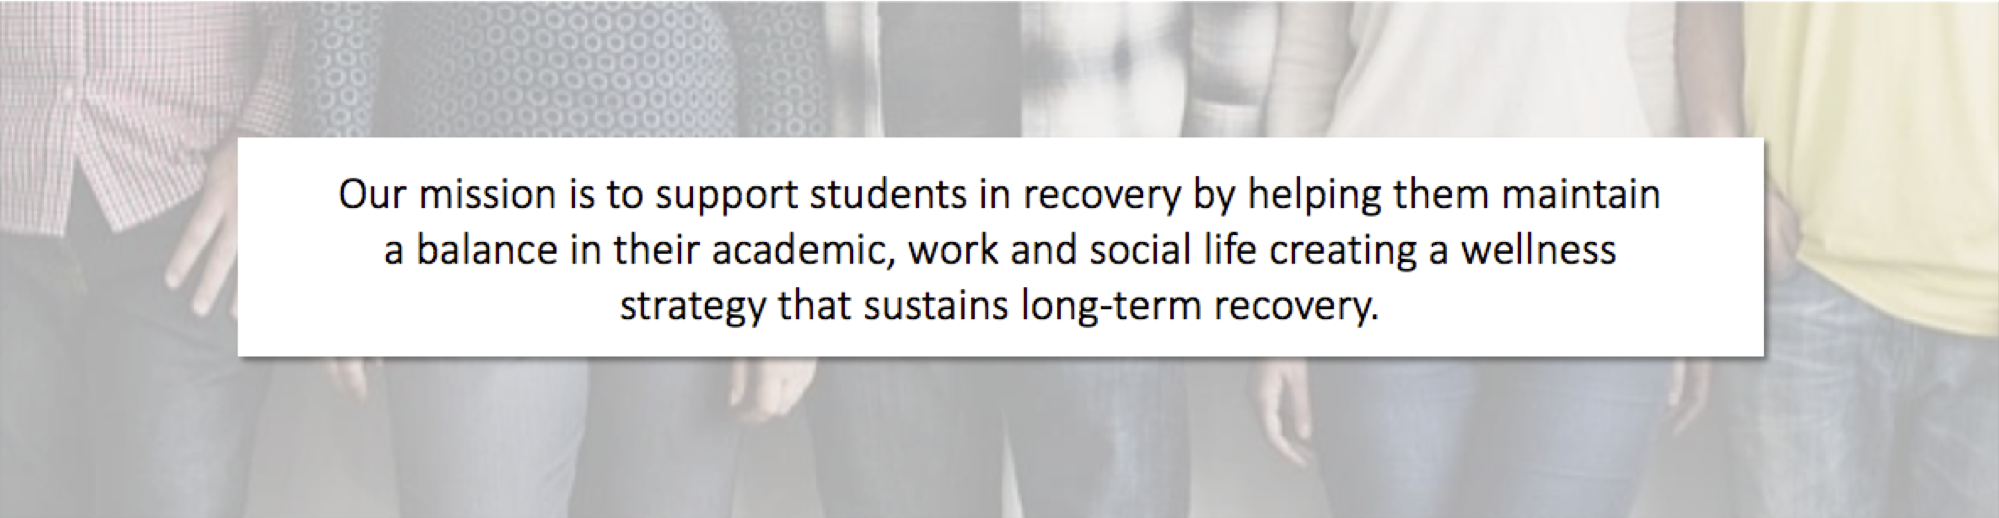 Our mission is to support students in recovery by helping them maintain a balance in their academic, work and social life creating a wellness strategy that sustains long-term recovery.